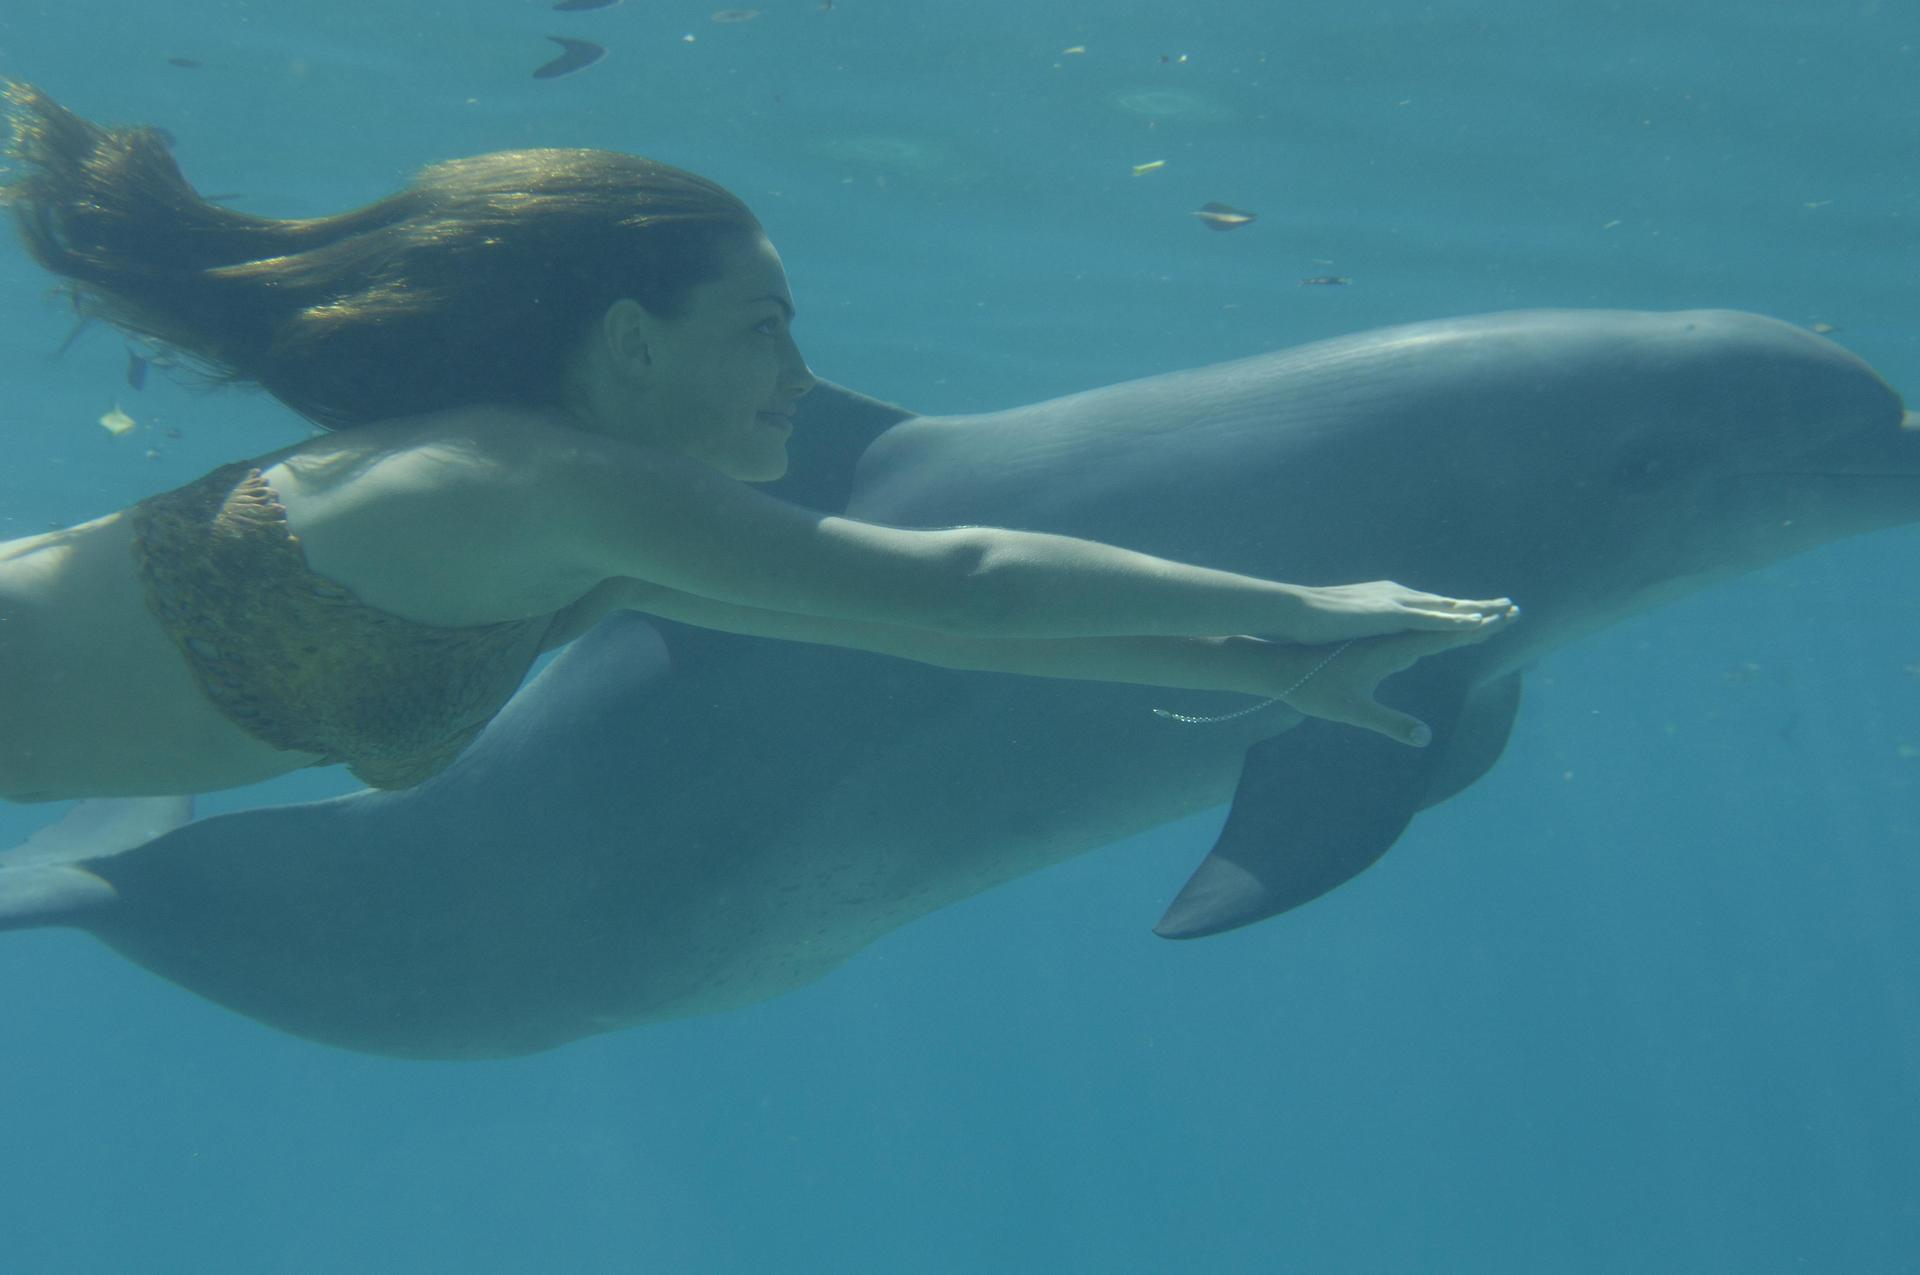 Phoebe tonkin and h20 images cleo swimming with a dolphin for Immagini h2o